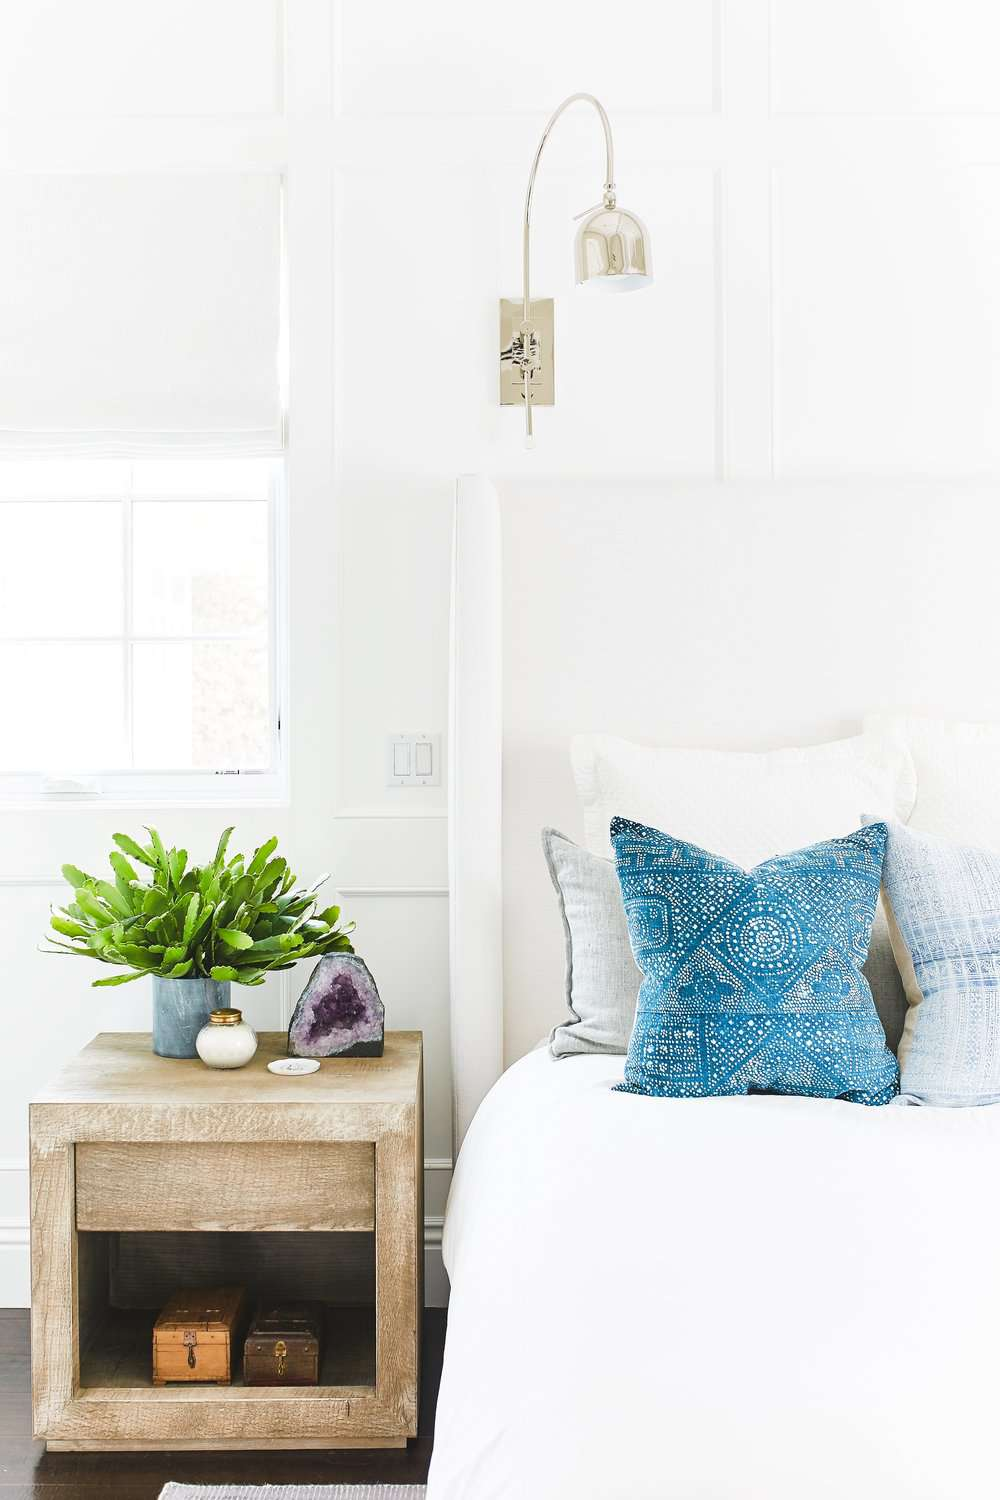 An all-white bedroom with blue pillows and a bold amethyst geode accent